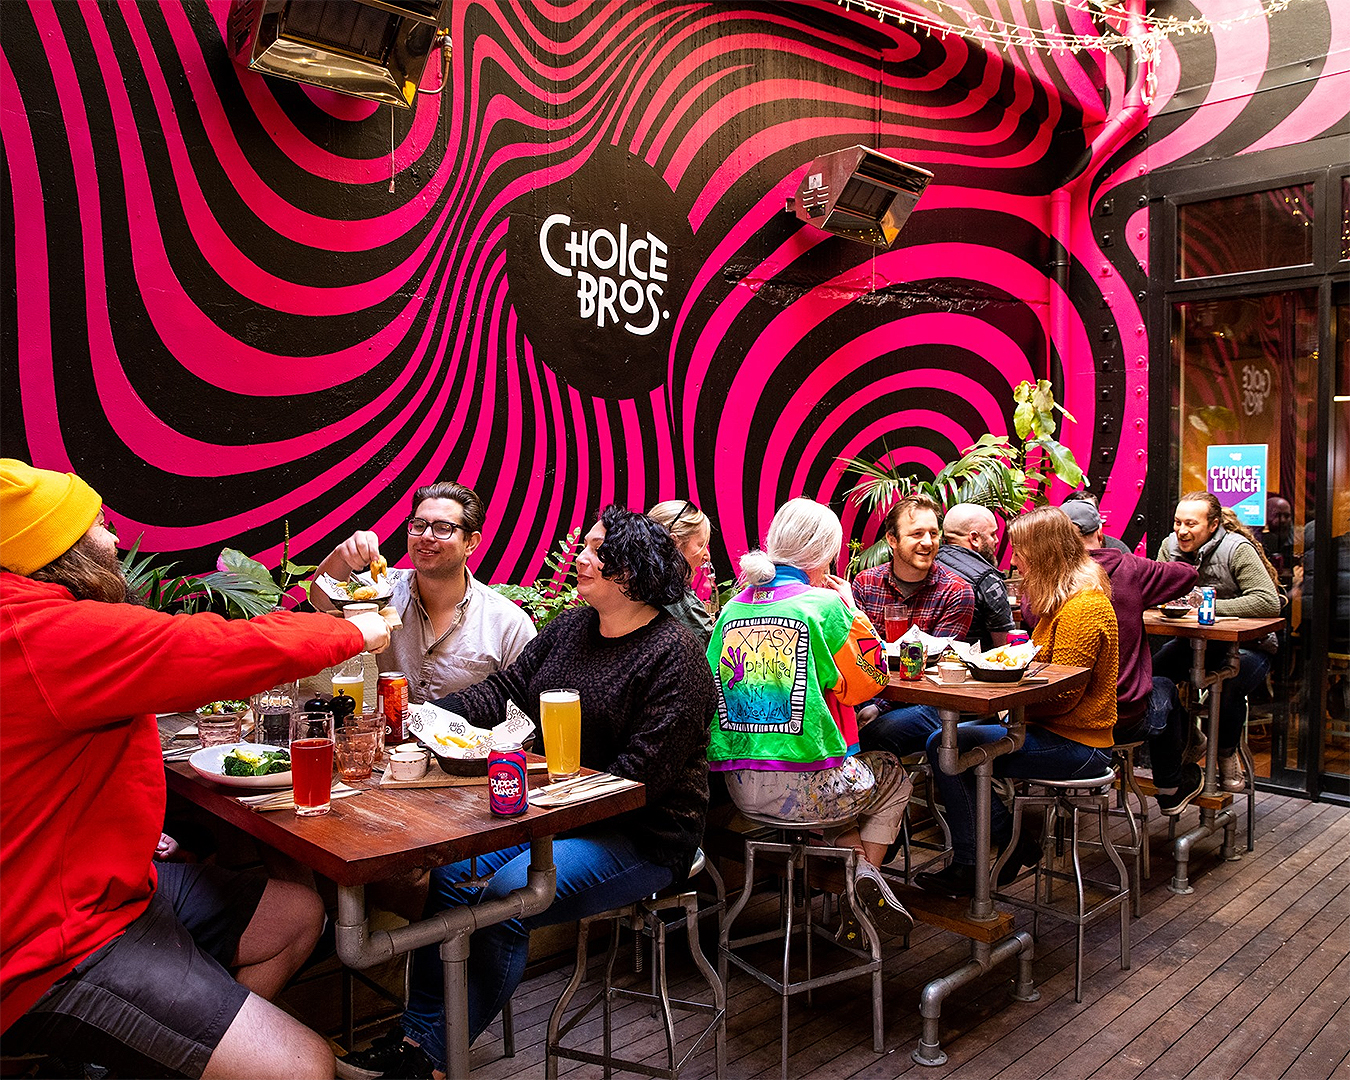 People revelling at Choice Bros at tables eating and drinking with a cool psychedelic mural on the wall.